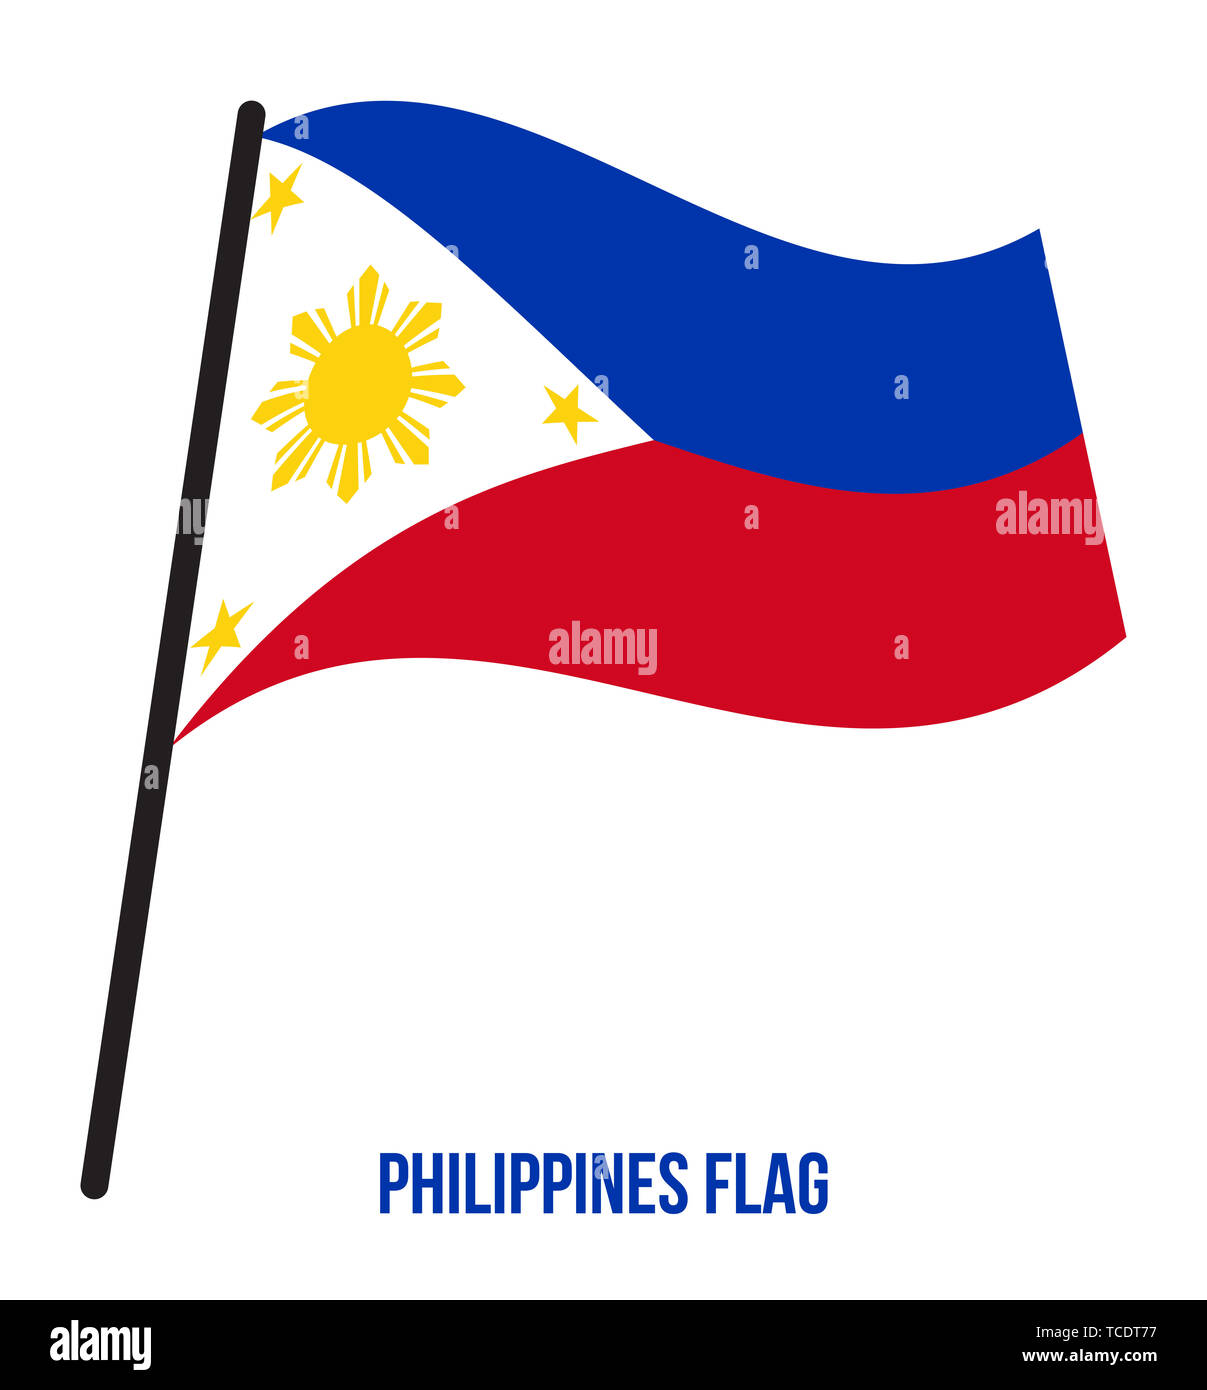 Philippines Flag Waving Vector Illustration On White Background Philippines National Flag Stock Photo Alamy Choose from over a million free vectors, clipart graphics download free image of group of people waving filipino flags in back lit about philippines, filipino, philippine flag, philippine flag and philippine. https www alamy com philippines flag waving vector illustration on white background philippines national flag image248625419 html